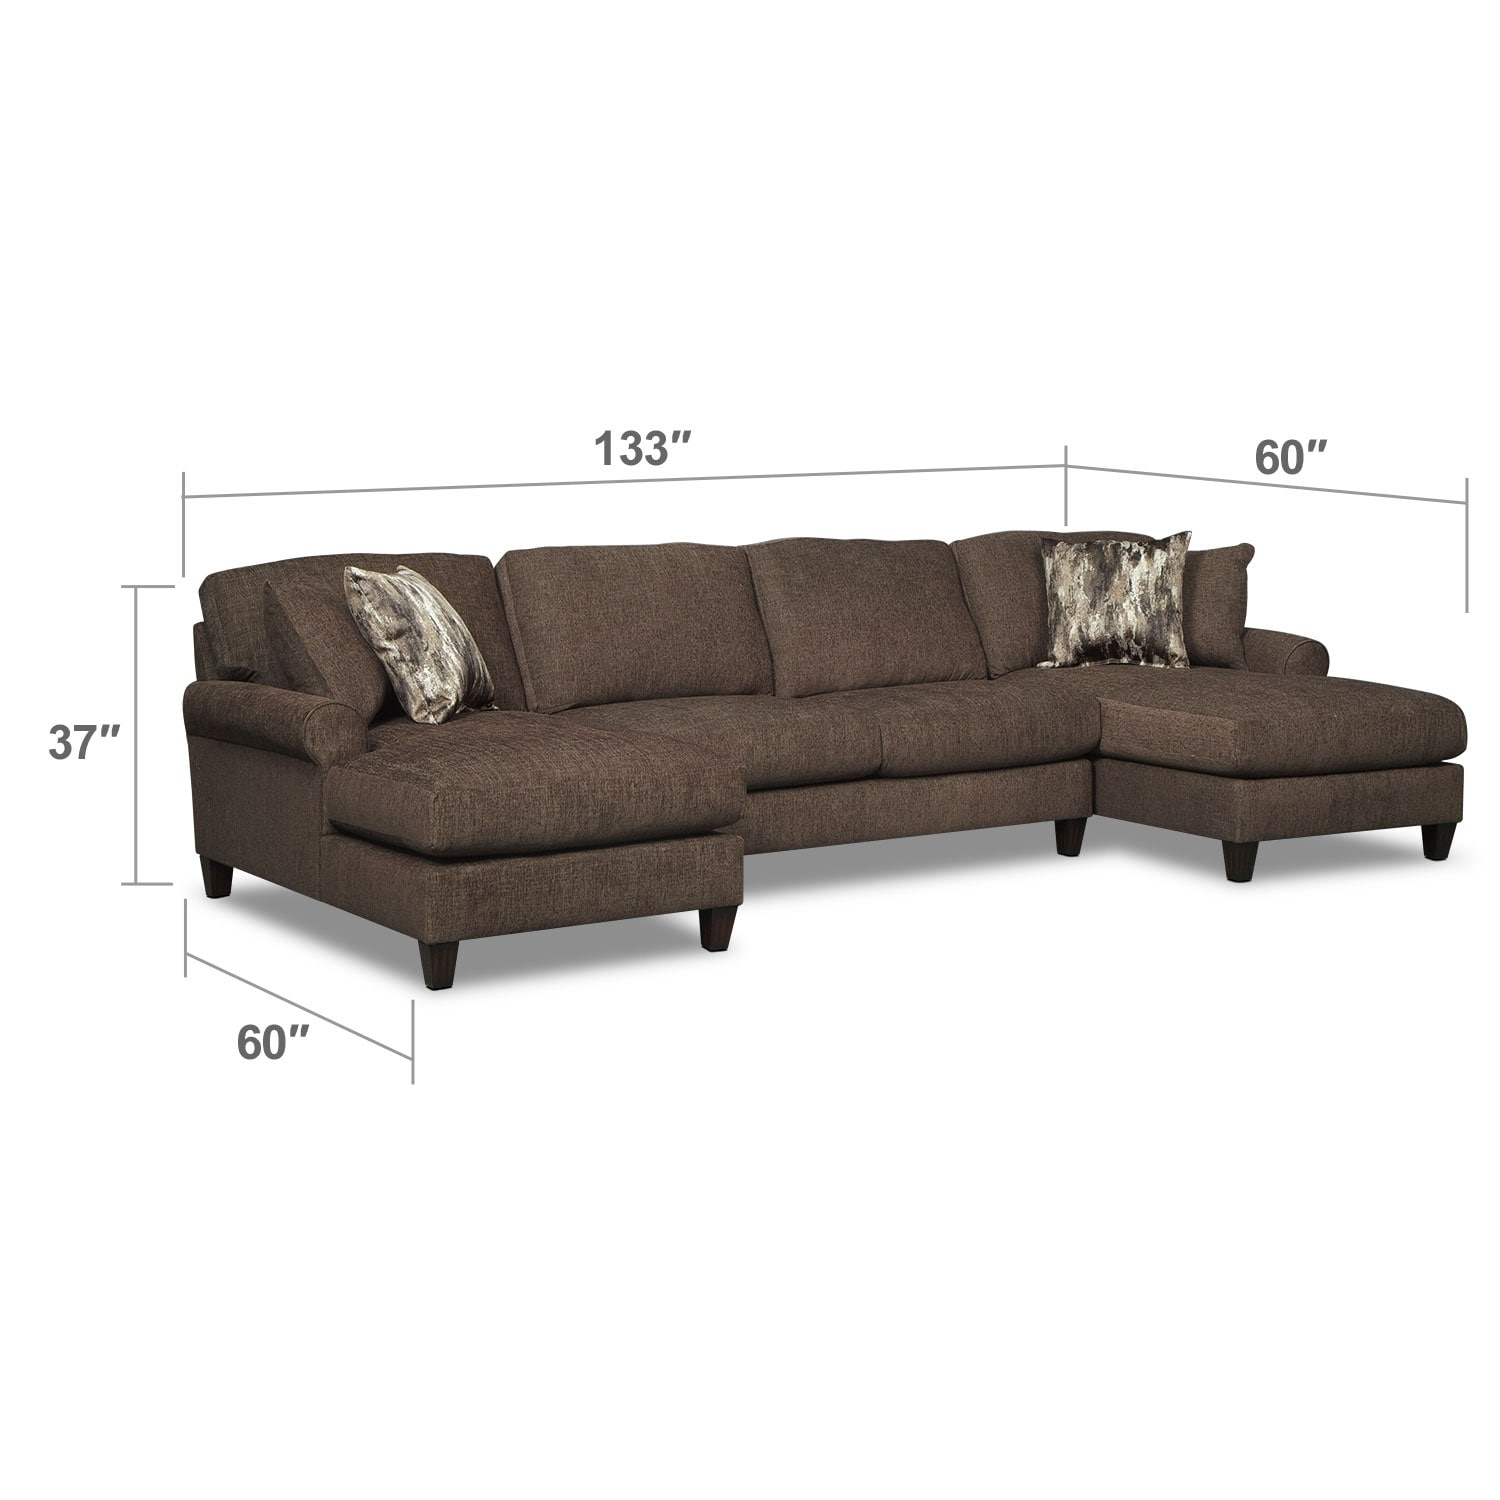 Living Room Furniture - Karma Smoke 3 Pc. Sectional with 2 Chaises